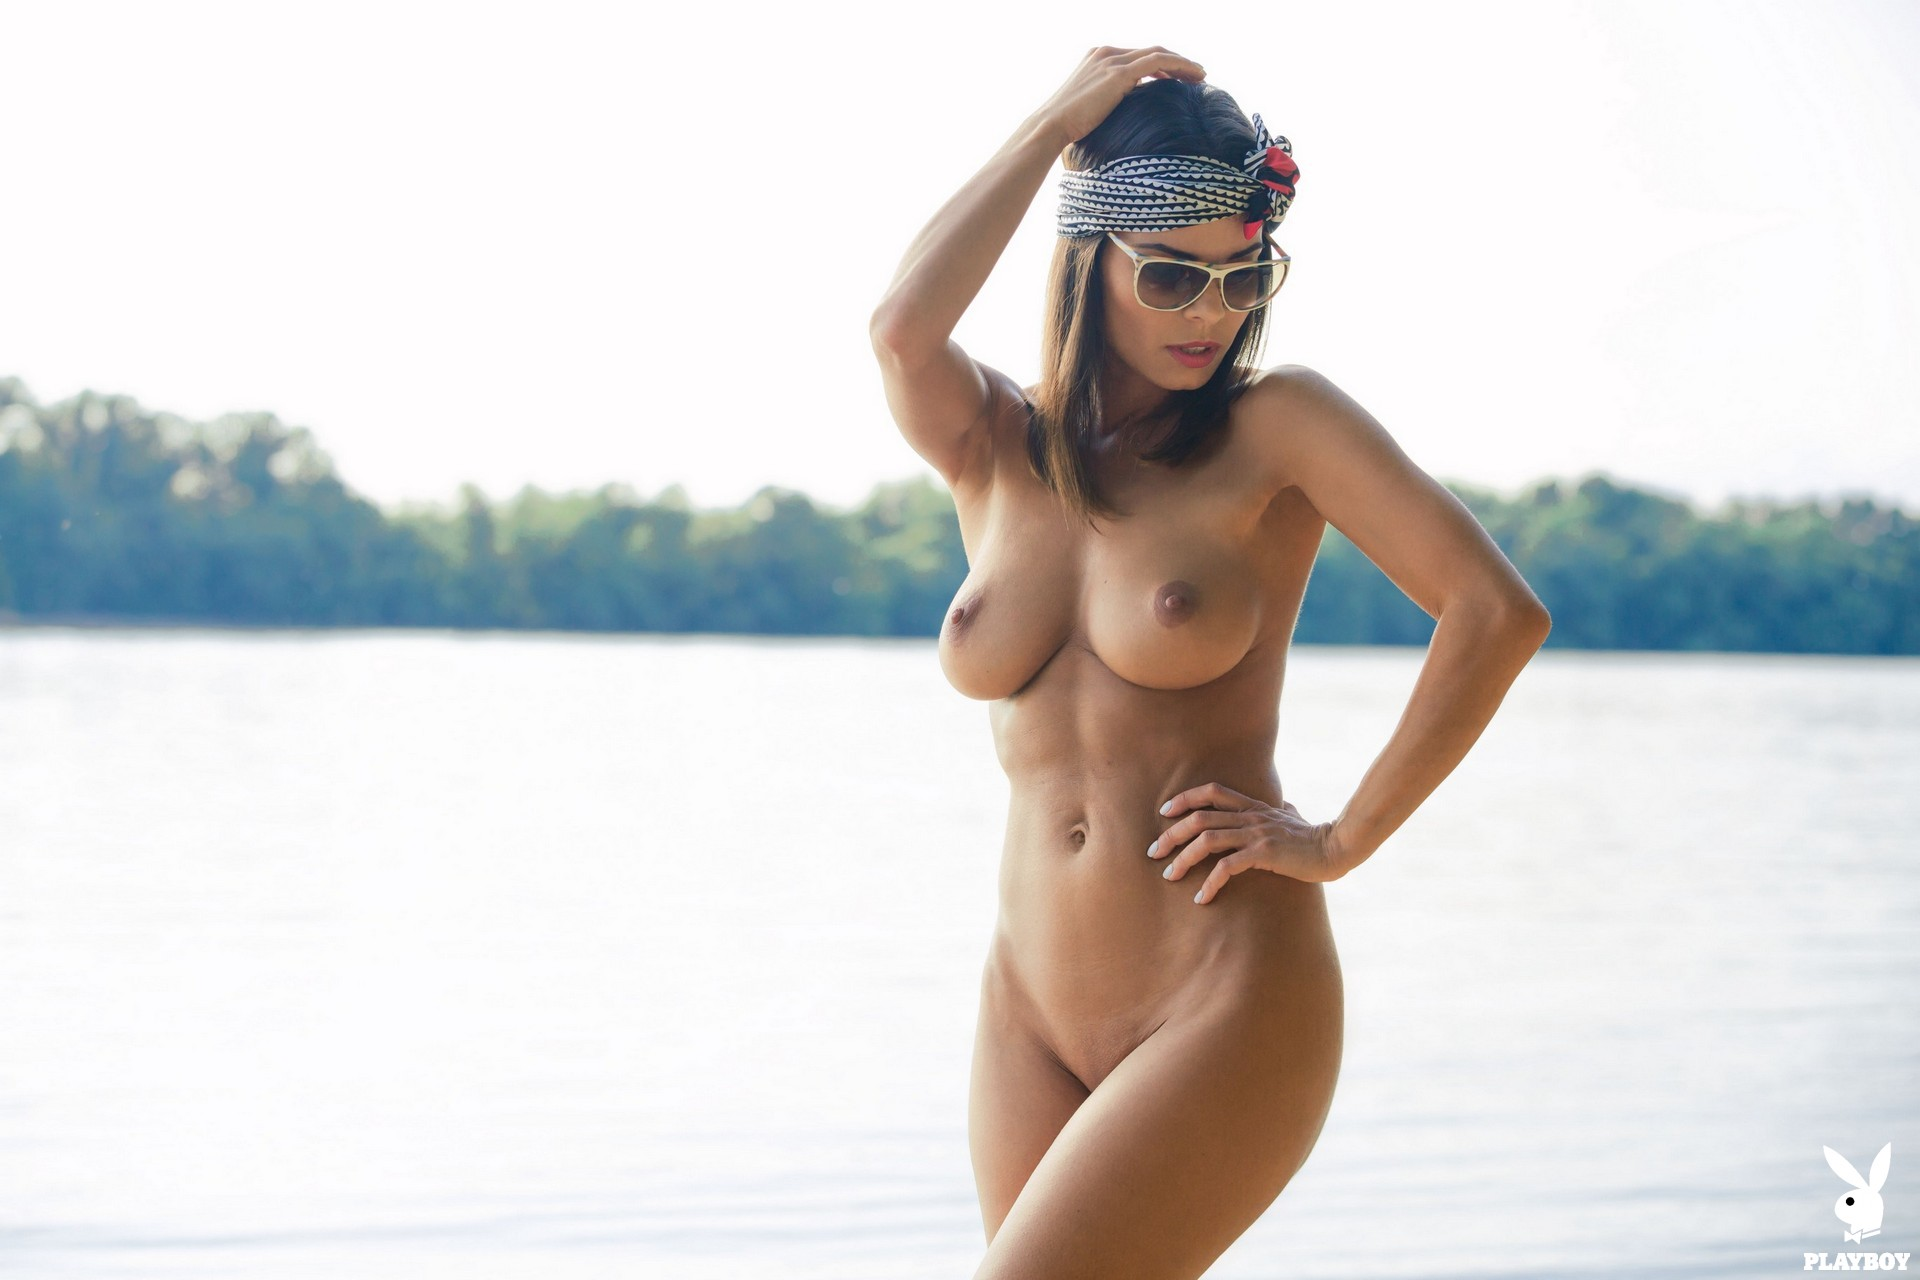 Natalie Costello in Soothing Lake - Playboy Plus 37